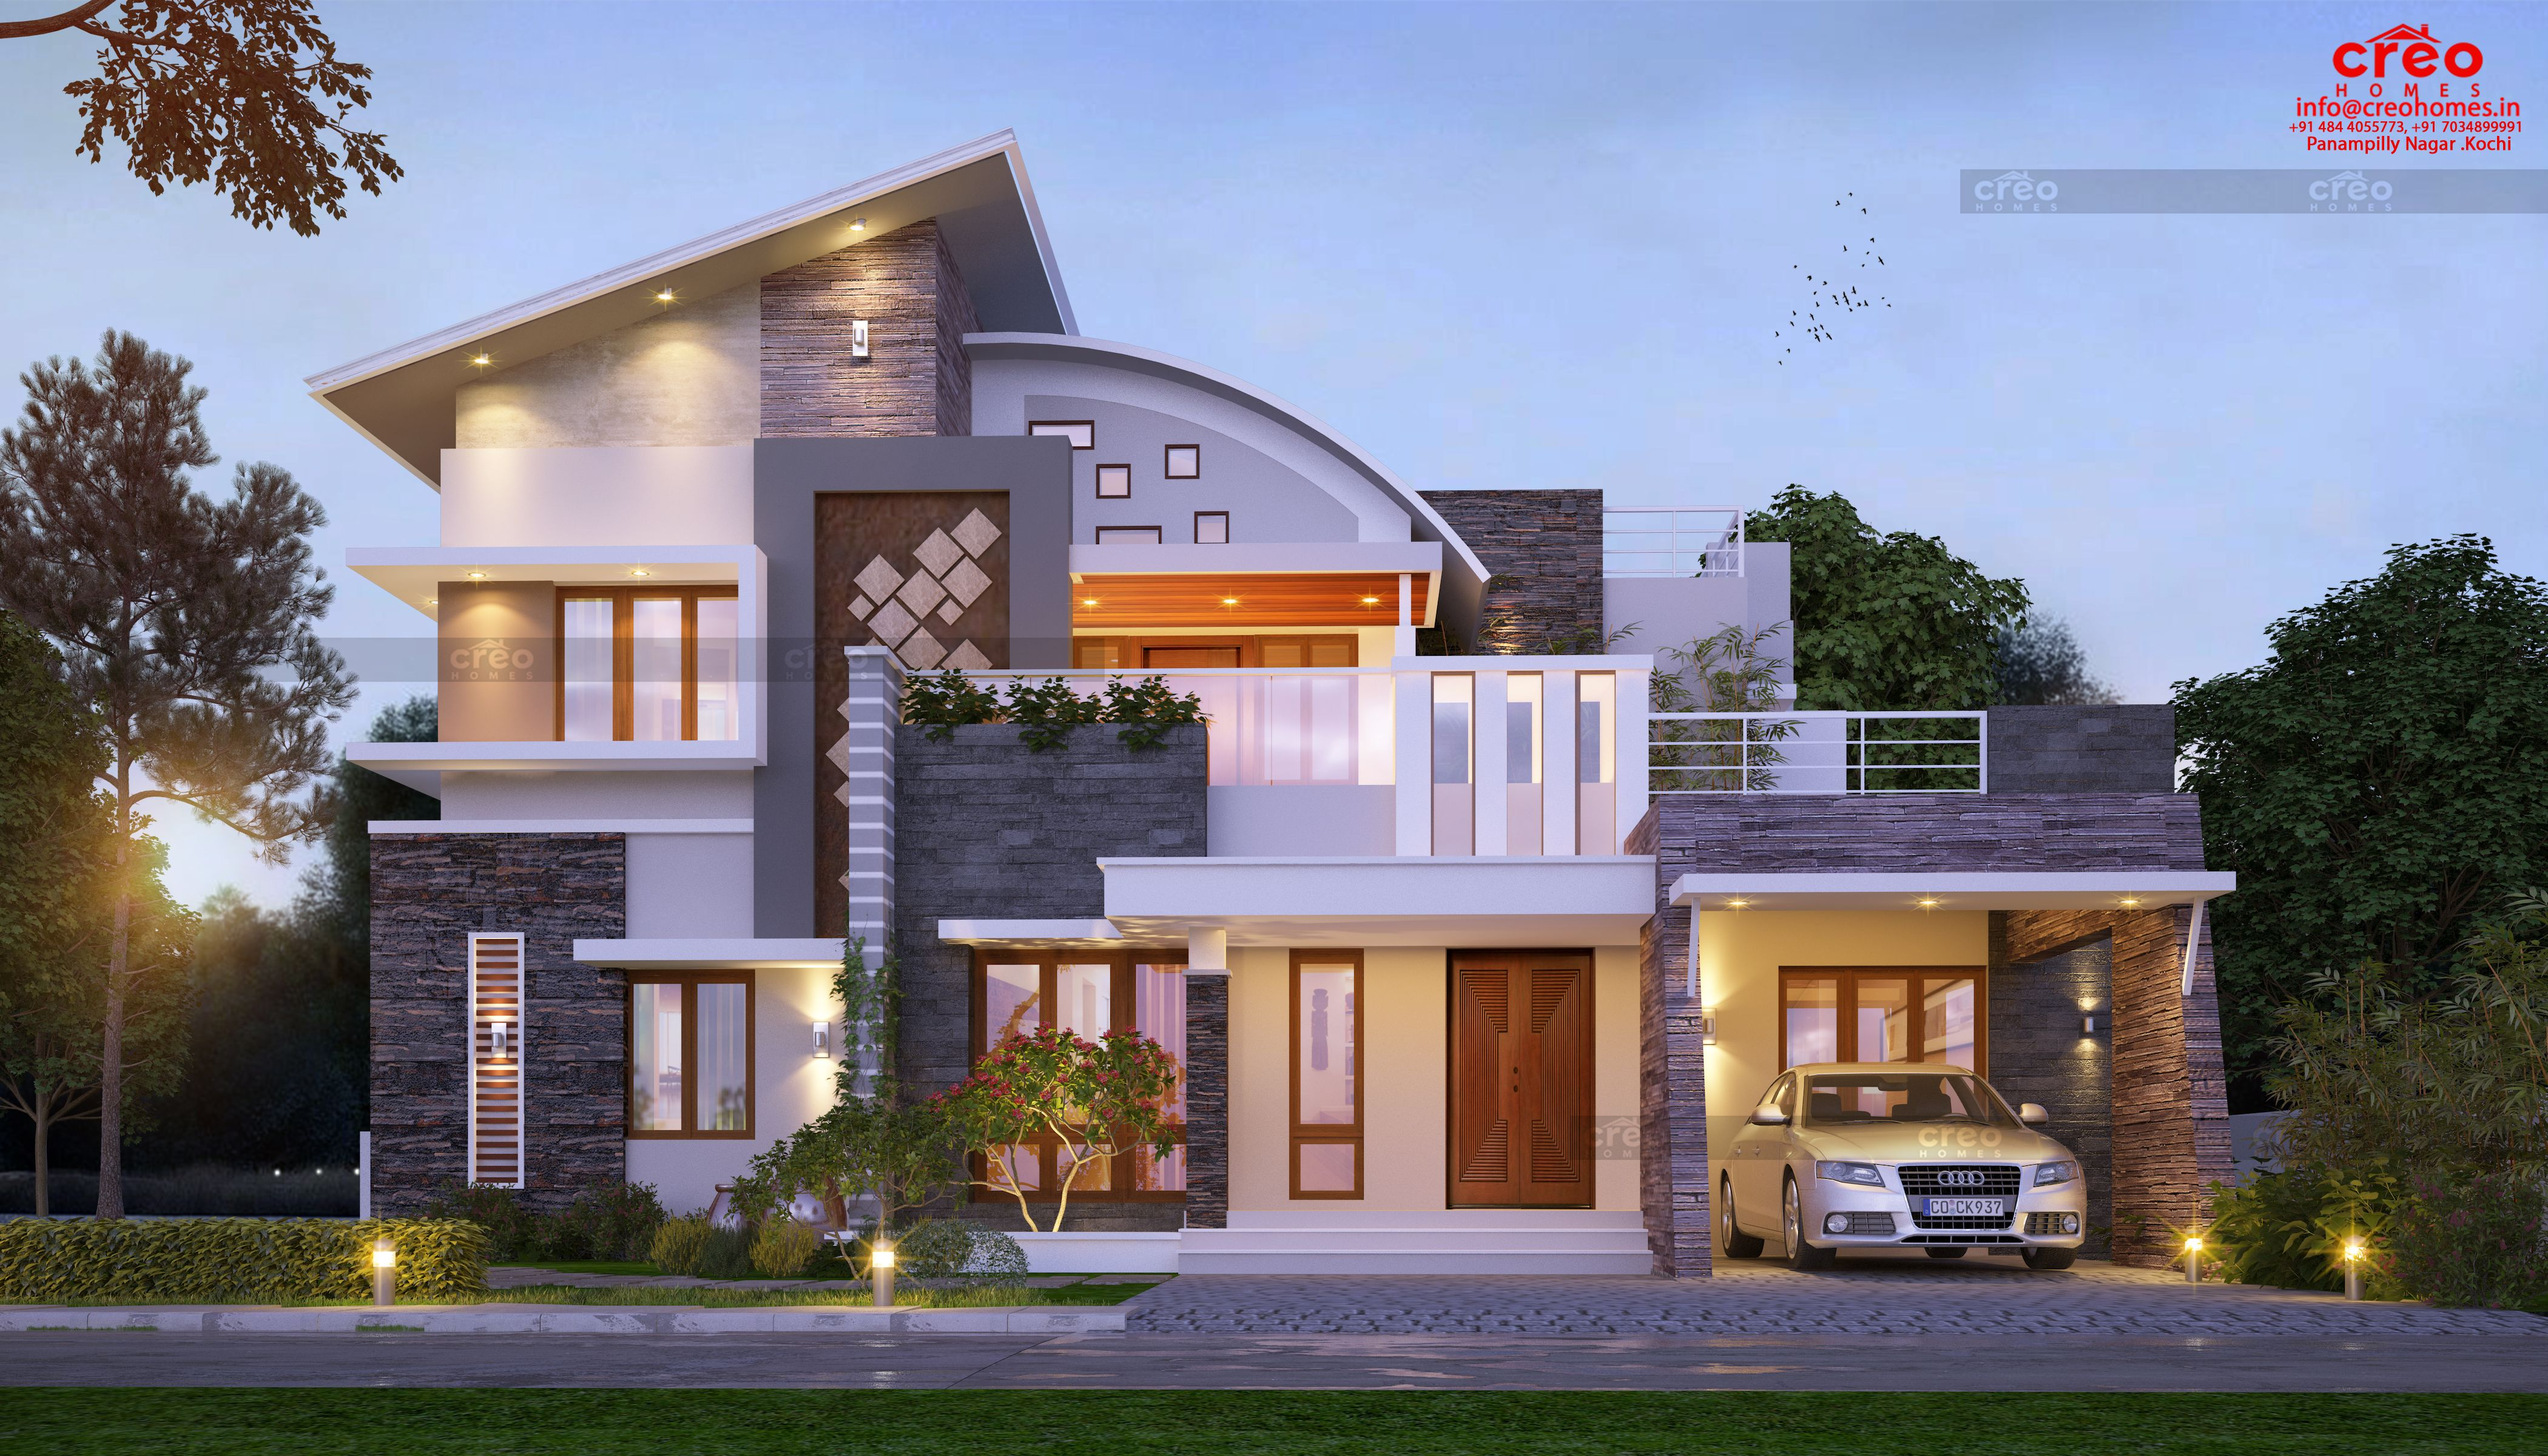 Creo Homes The Best Construction Company Is A Leader In